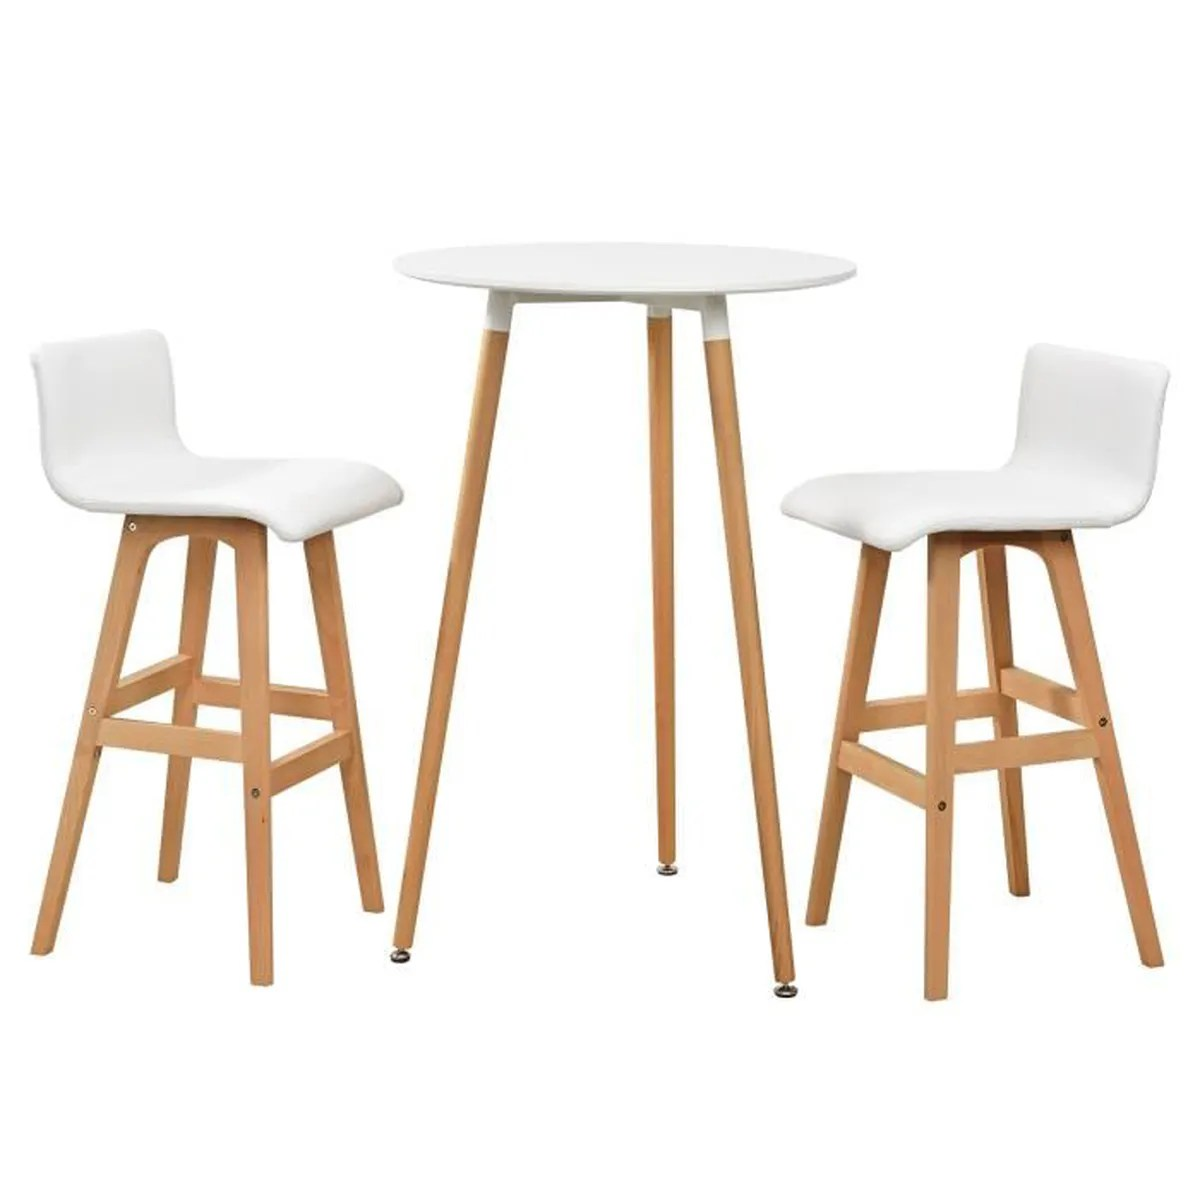 Image Table De Bar Et Tabourets Tabouret Et Table De Bar Achat Vente Tabouret Et Table